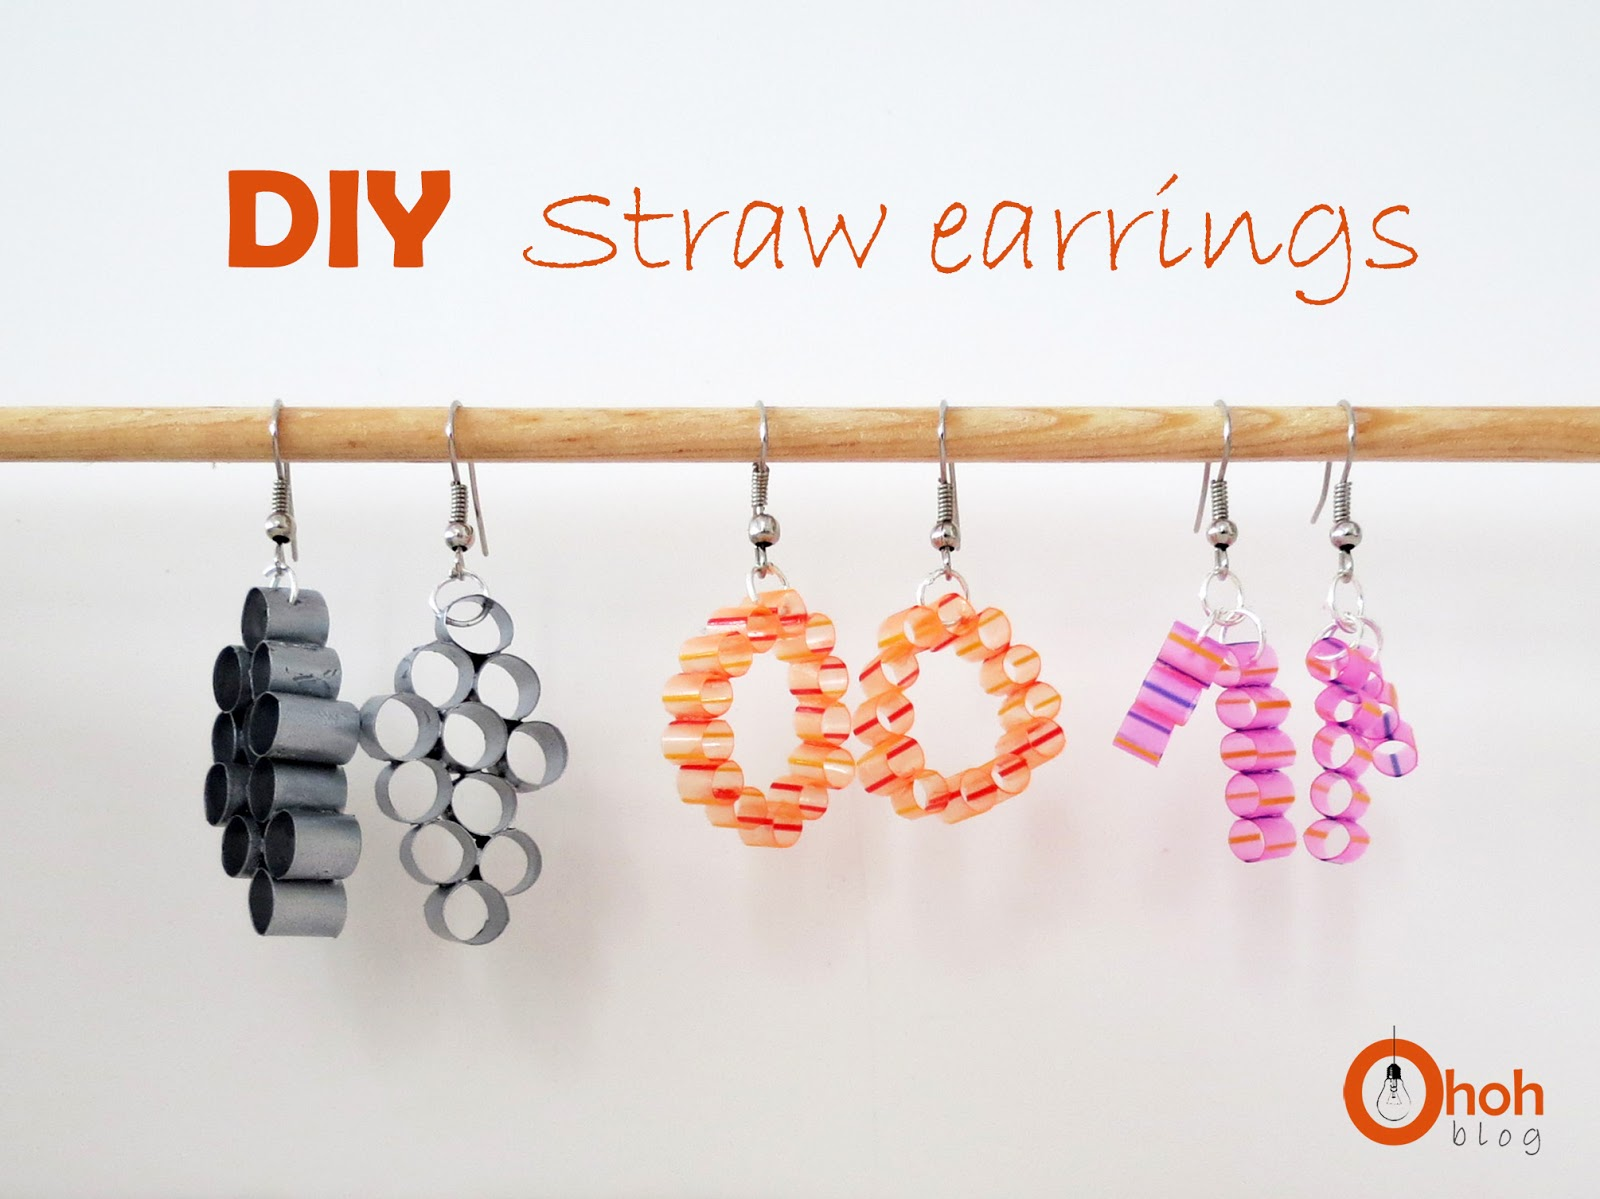 DIY Straw earrings - Ohoh Blog